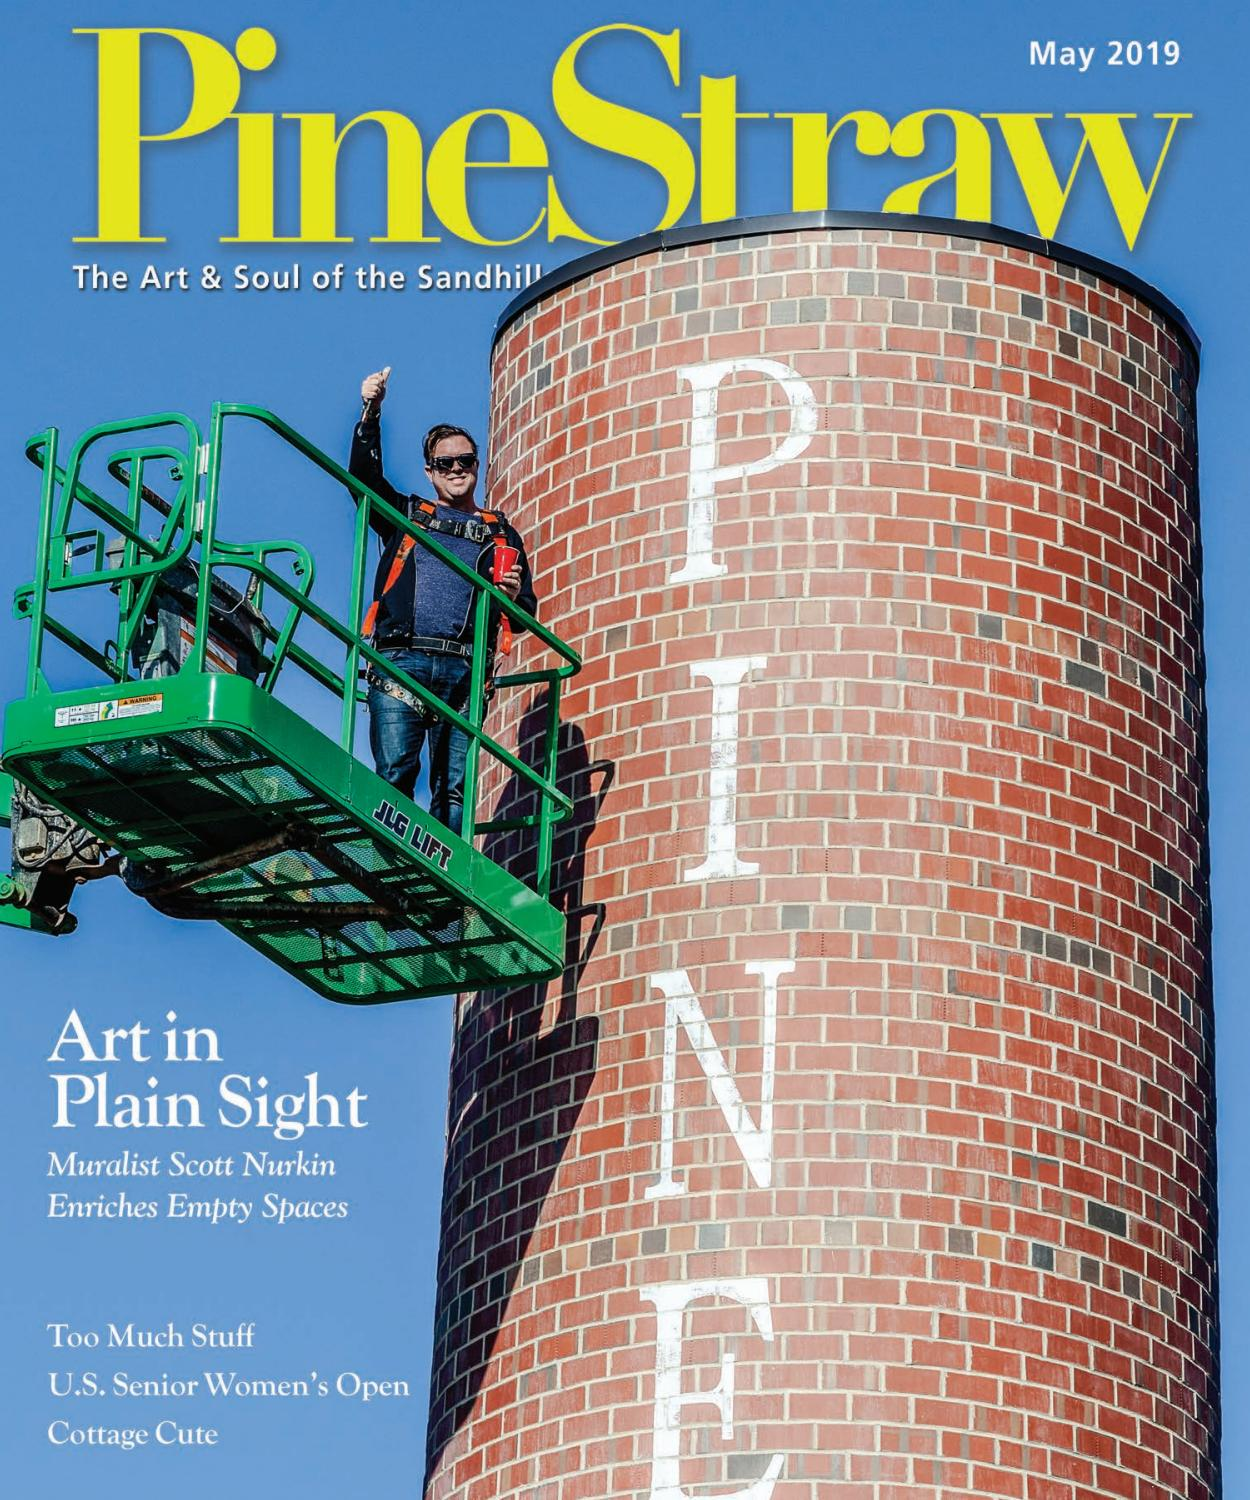 2af09dd4b May PineStraw 2019 by PineStraw Magazine - issuu